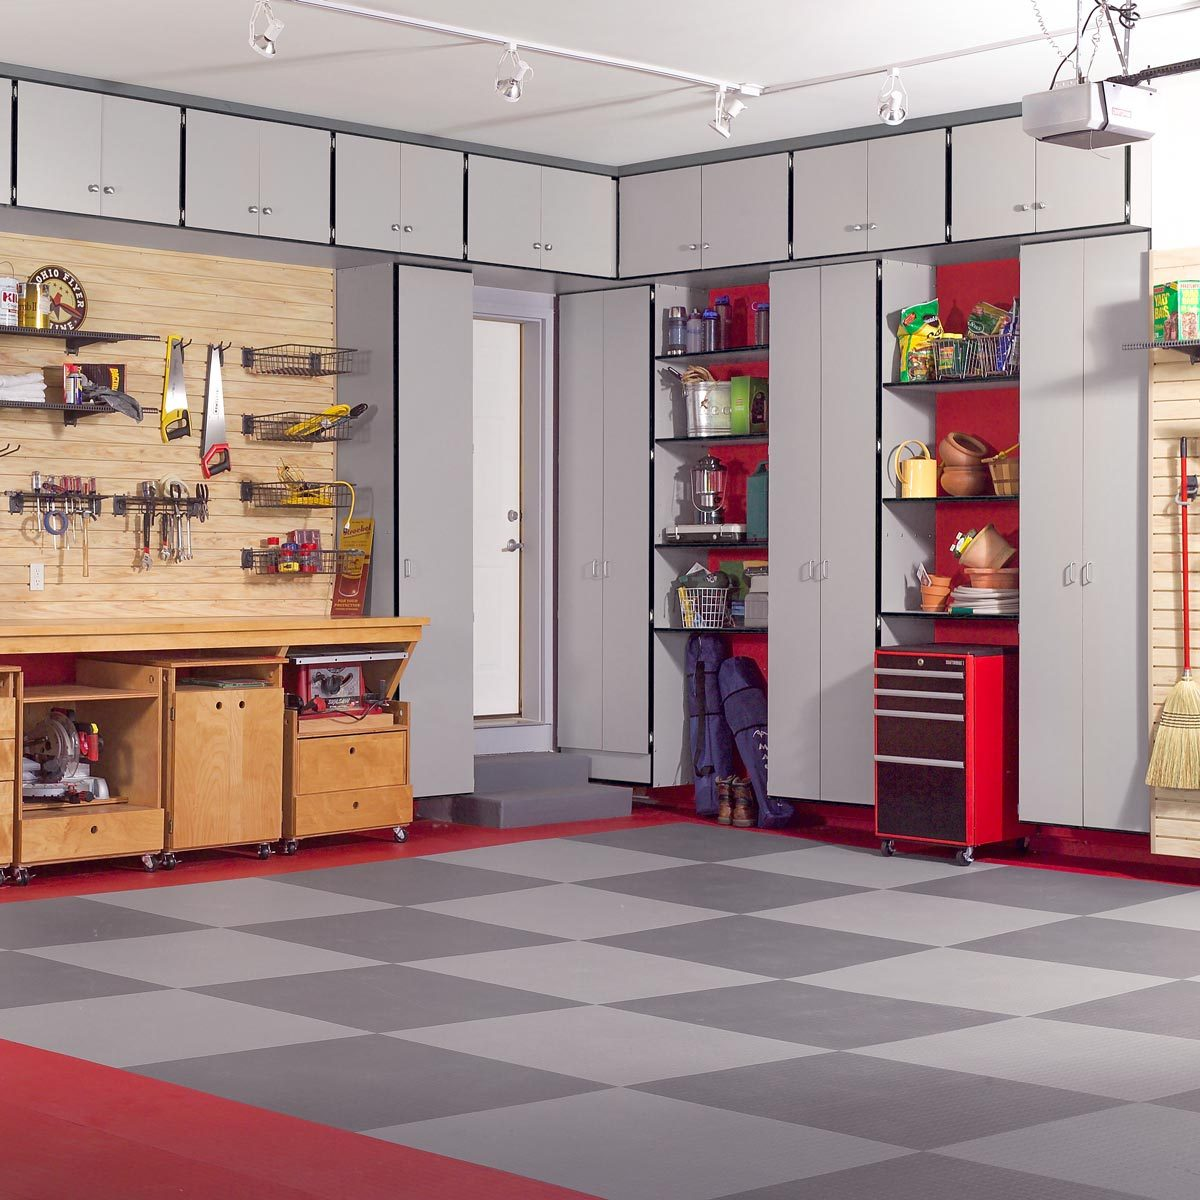 Garage Cabinets Dimensions Build The Ultimate Garage Cabinets Yourself